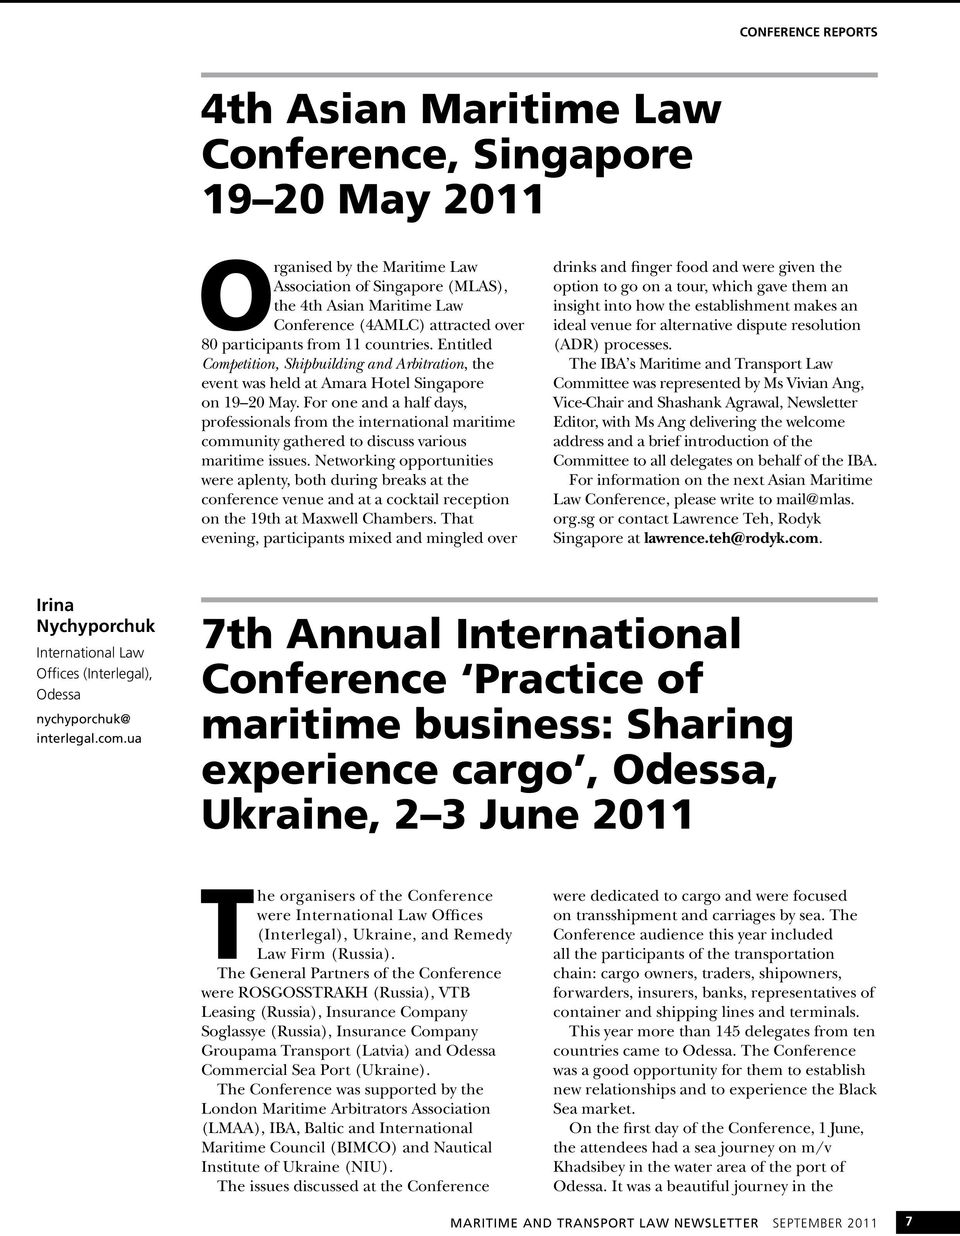 For one and a half days, professionals from the international maritime community gathered to discuss various maritime issues.